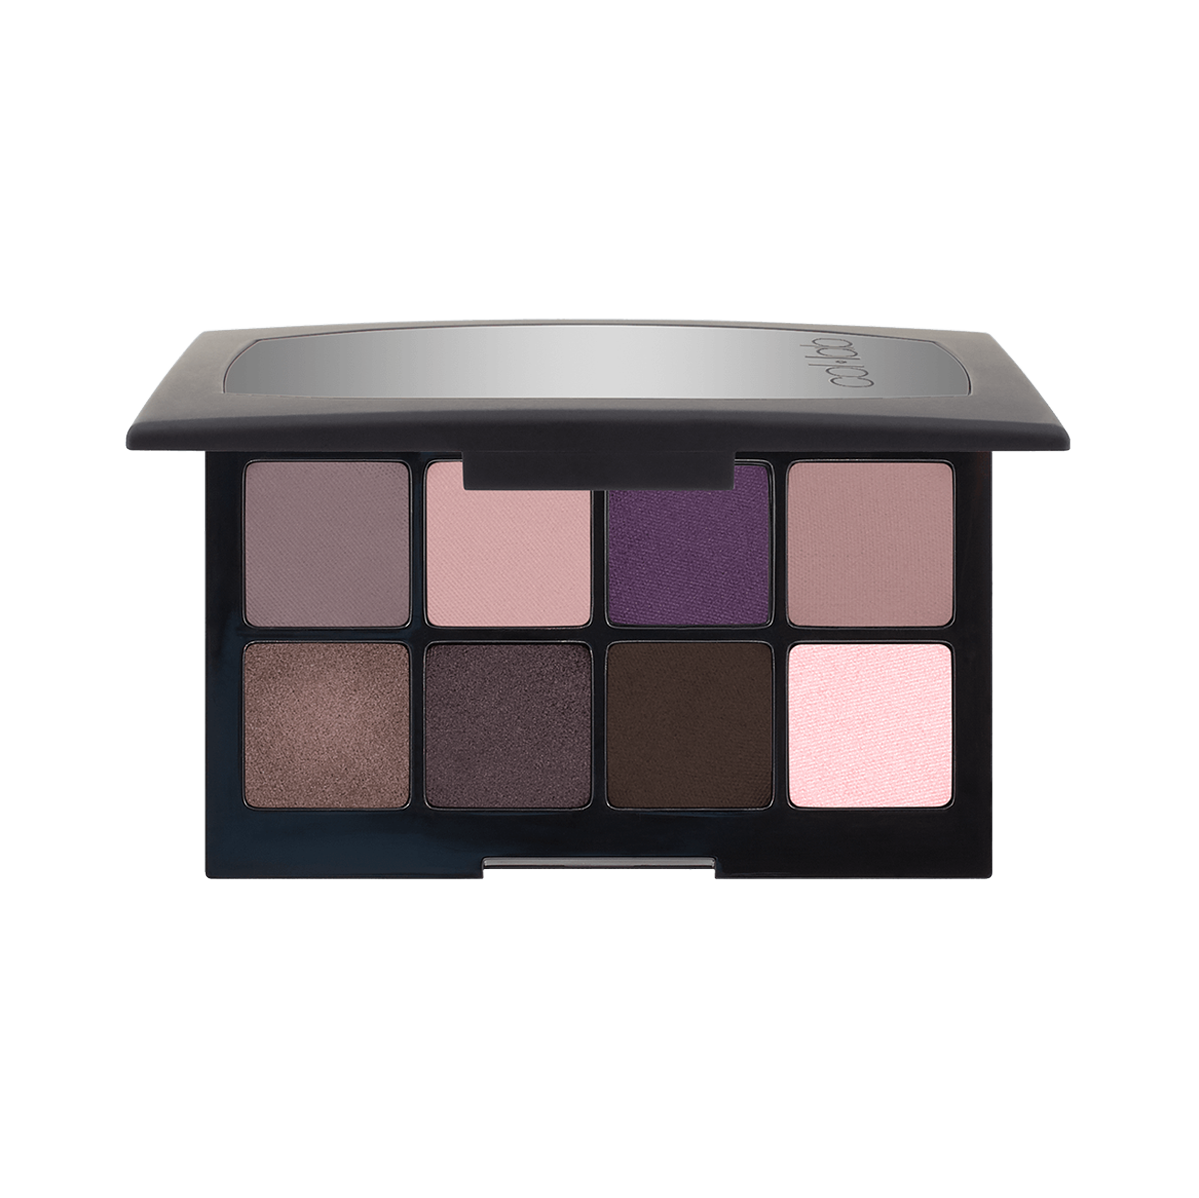 collab-palette-pro-firstimpressions-open.png